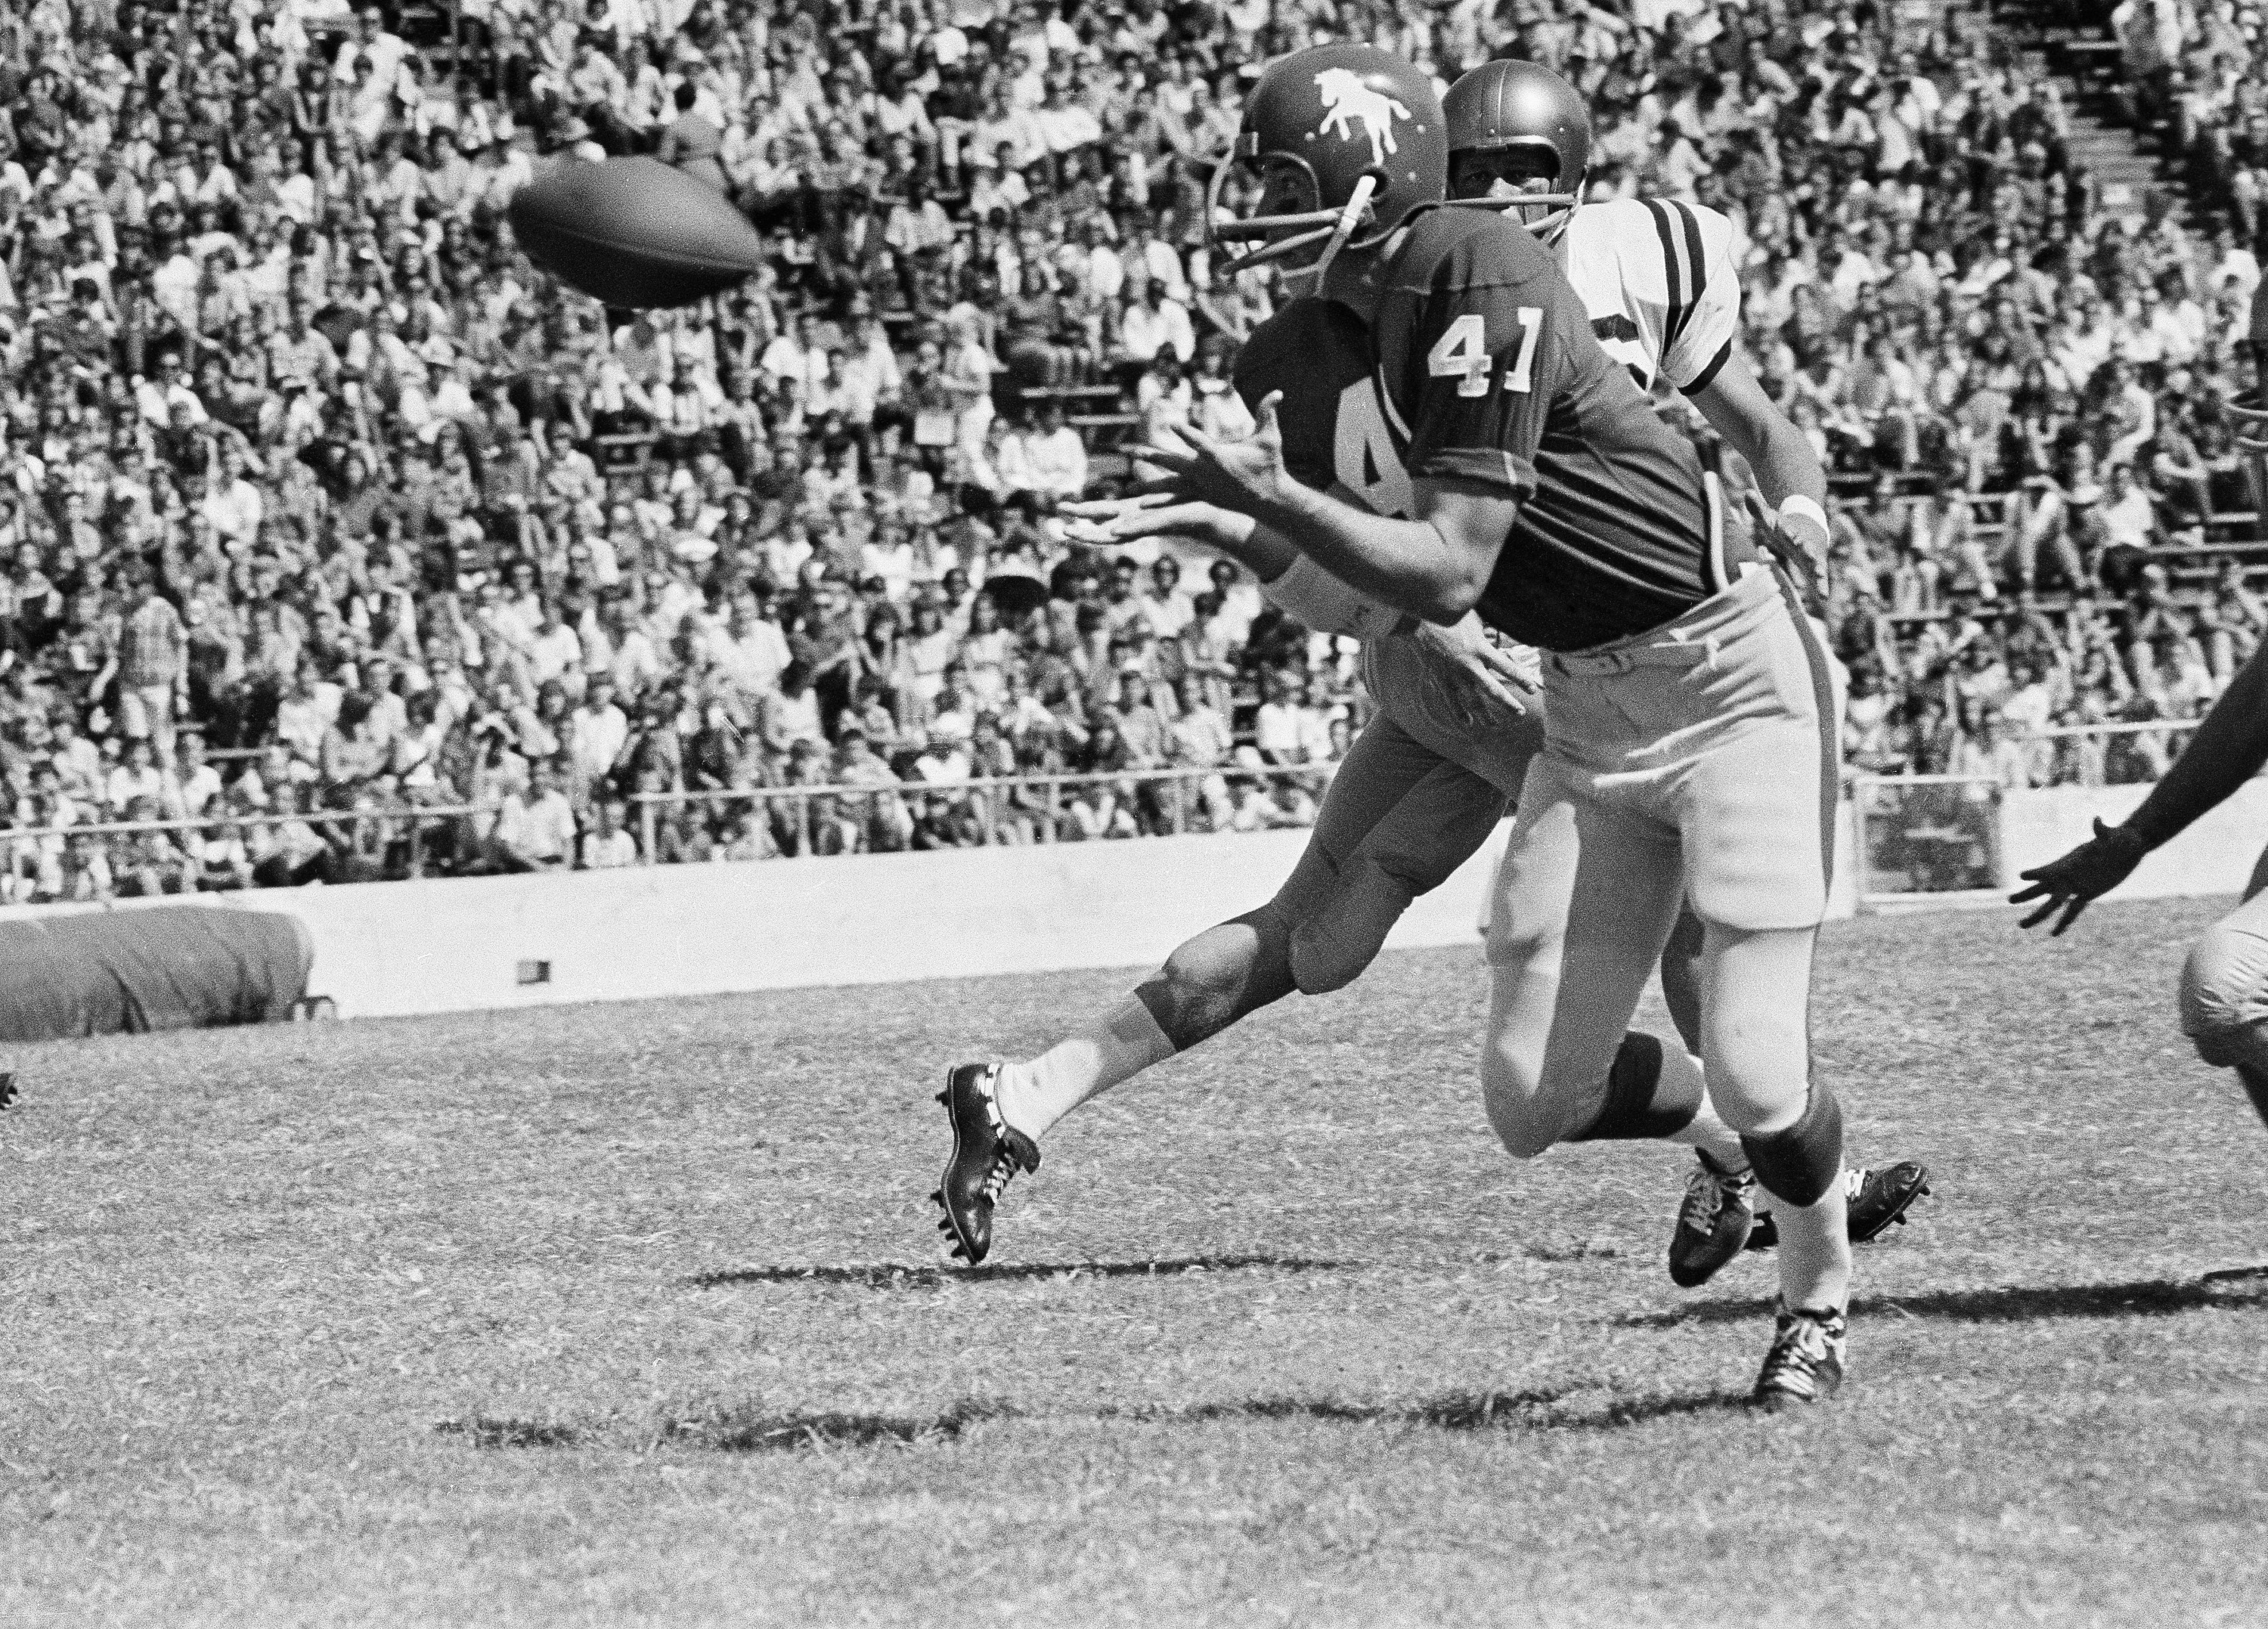 Jerry Wilson (41), SMU defensive safety man, reaches out to pick off a Navy pass intended for Tom Leiser, Navy halfback, during the first quarter of the game, Sept. 24, 1966, Dallas, Texas. Danny Wong, Navy fullback, comes in behind Wilson in an effort to halt the interception. (AP Photo/Robert D. Scott)